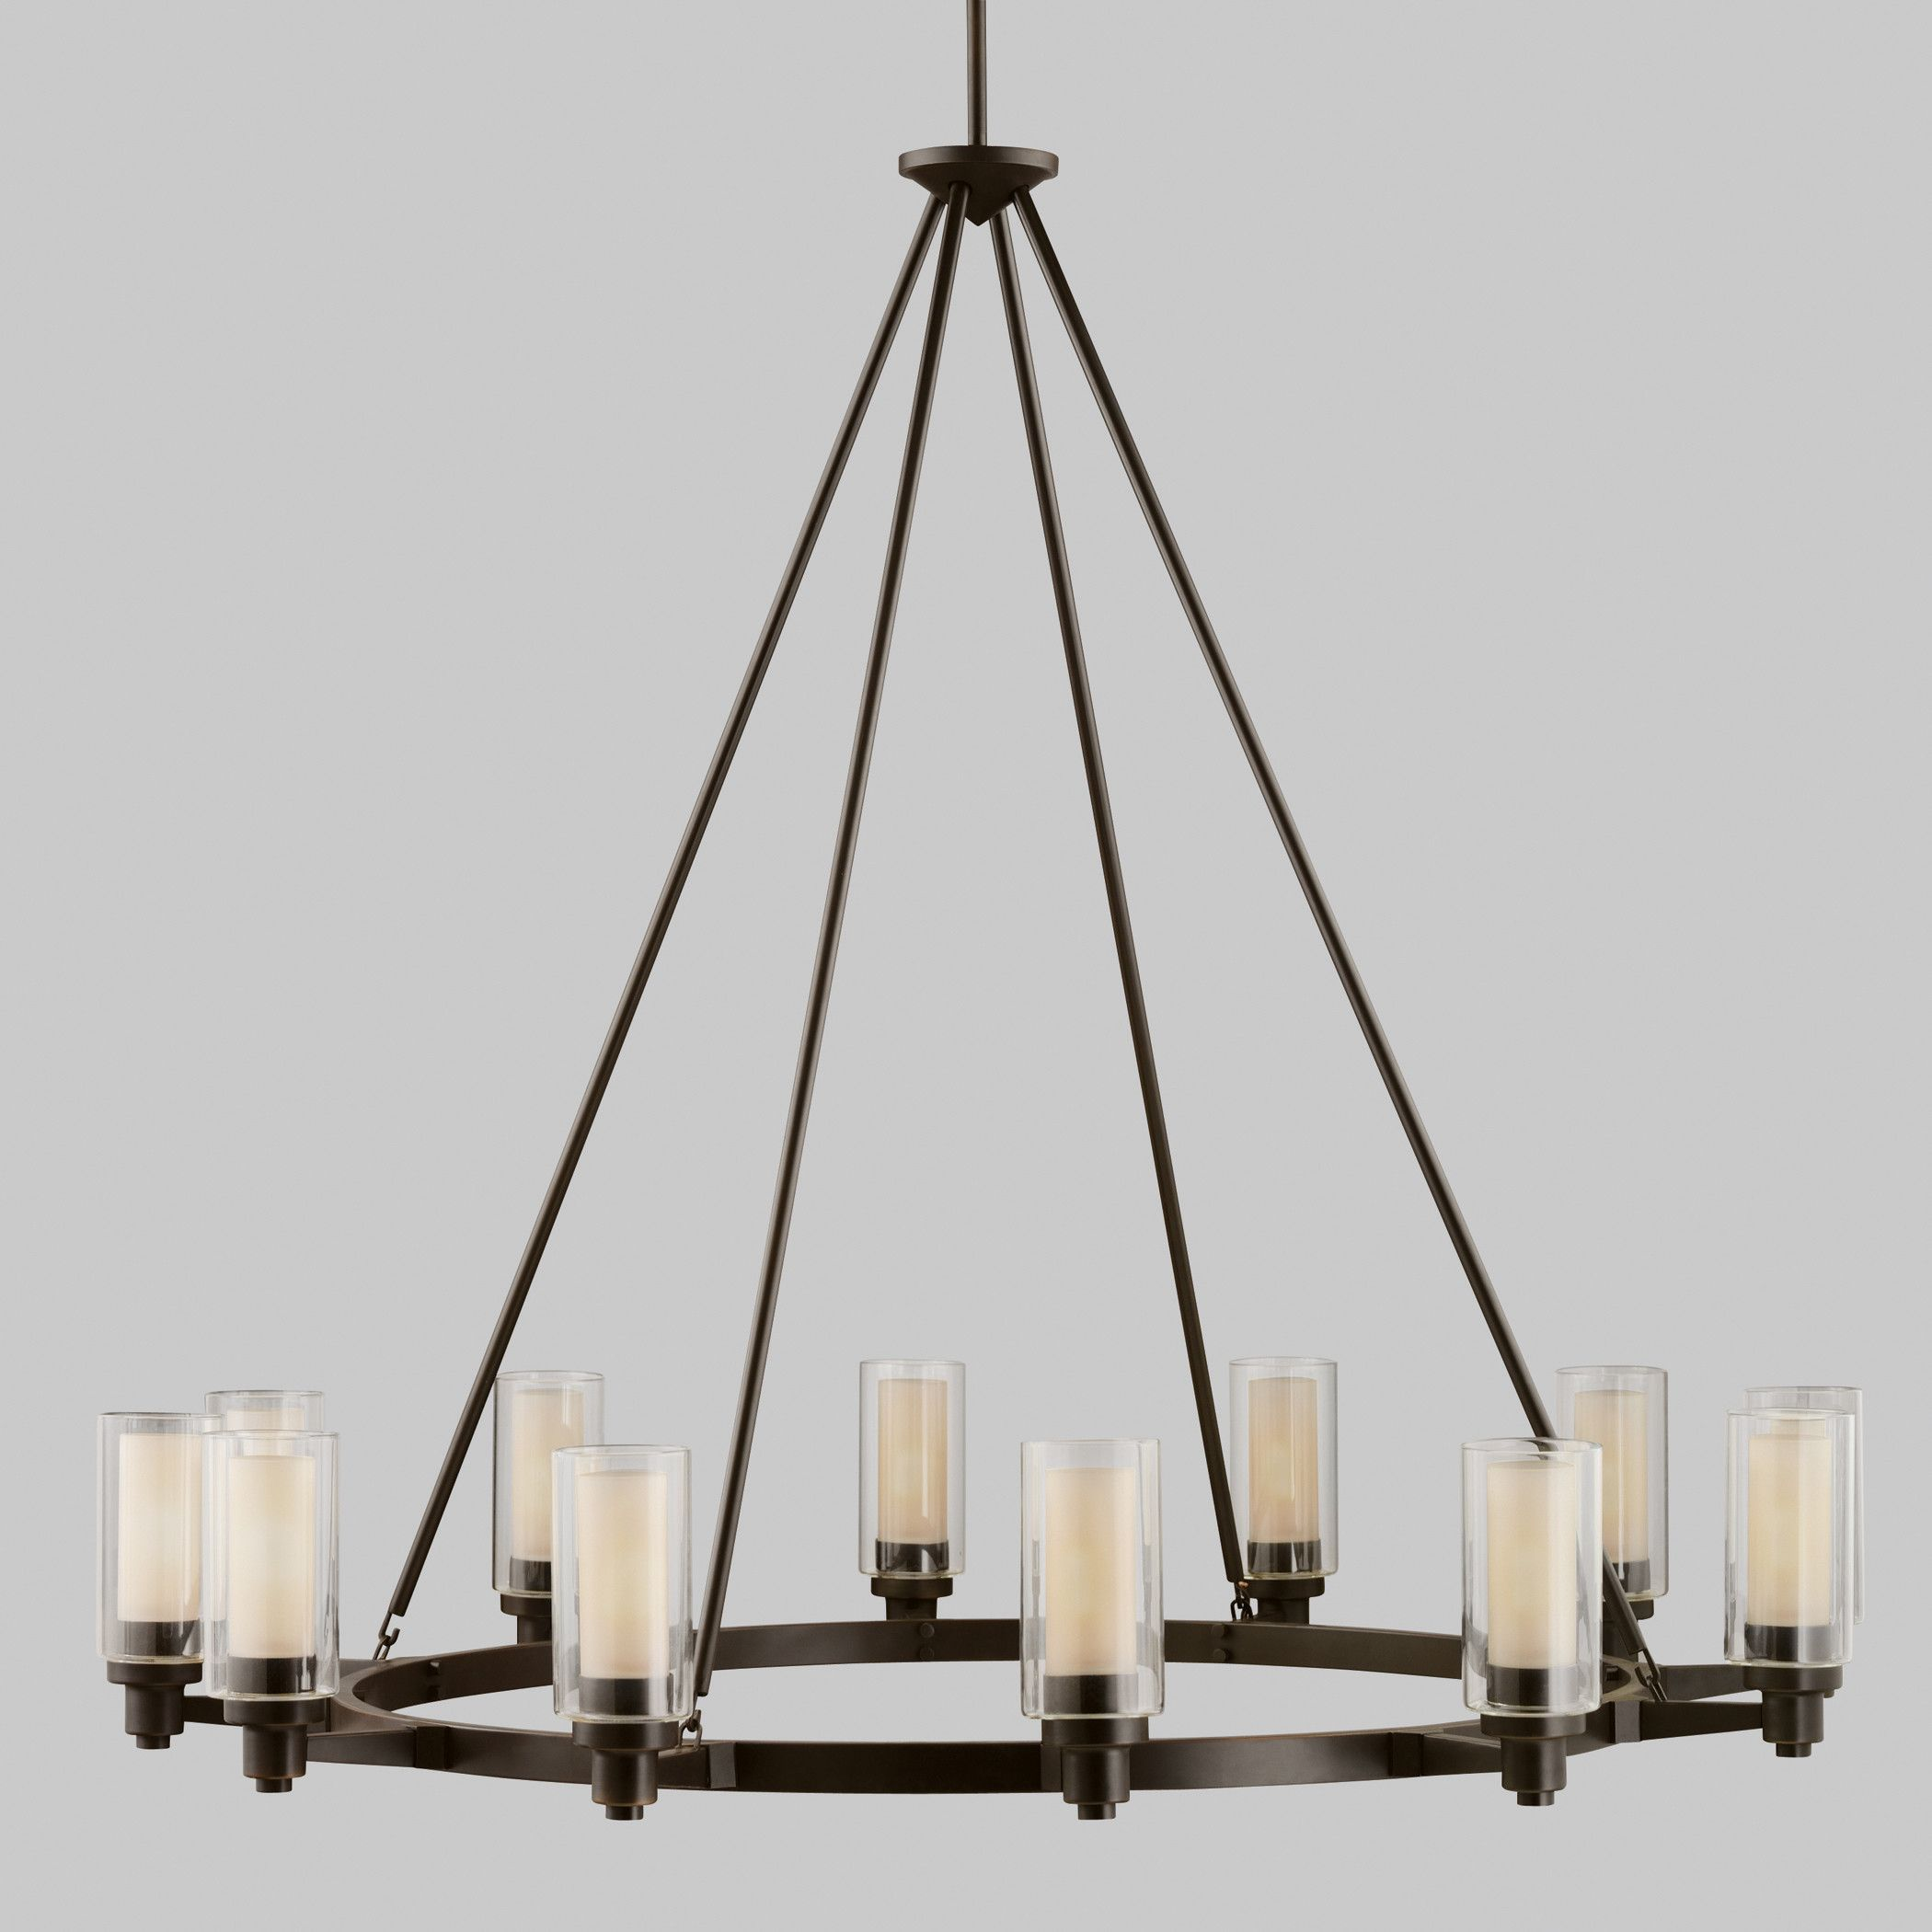 Shop Wayfair for Chandeliers to match every style and budget Enjoy